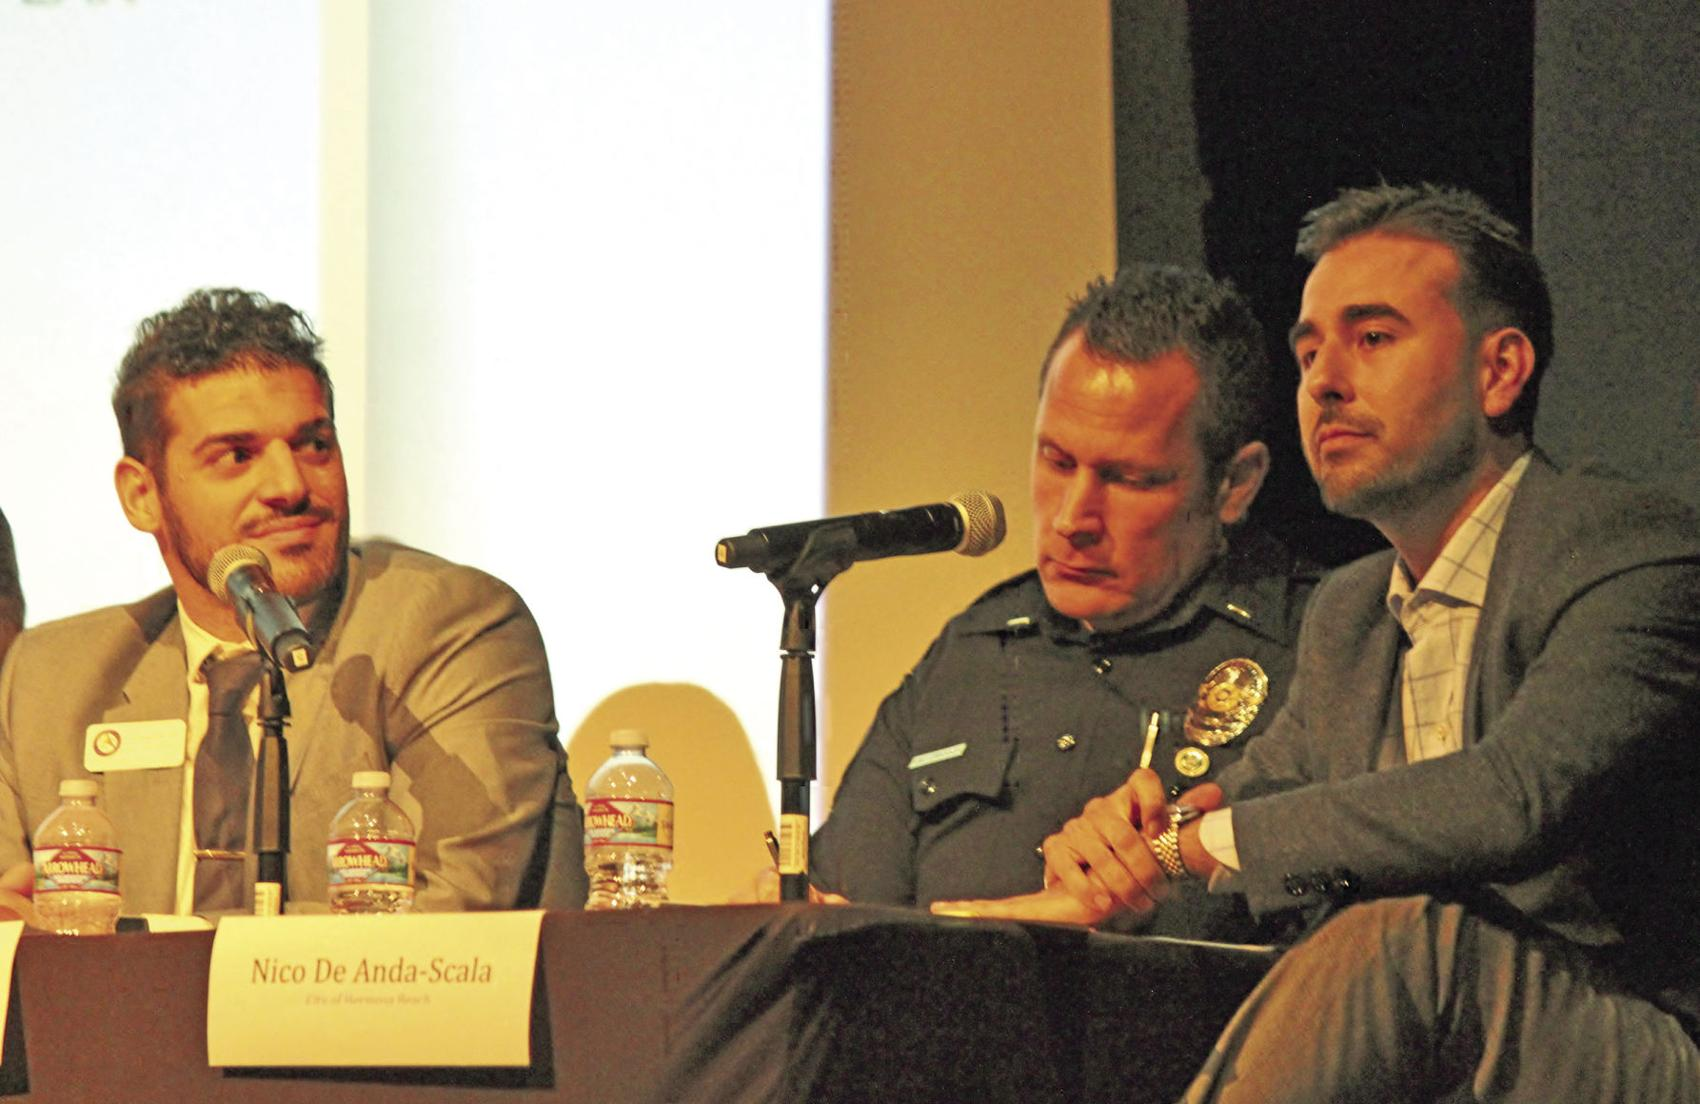 """George Gabriel, senior managment analyst for the city of Manhattan Beach, Lt. Jason Knickerbocker of the Manhattan Beach Police Department and Nico De Anda Scaia, assistant city manager in Hermosa Beach, spoke at the League of Women Voters of the Beach Cities """"Homeless in the South Bay: Issues and Answers"""" presentation Monday at the Hermosa Beach Community Theater."""